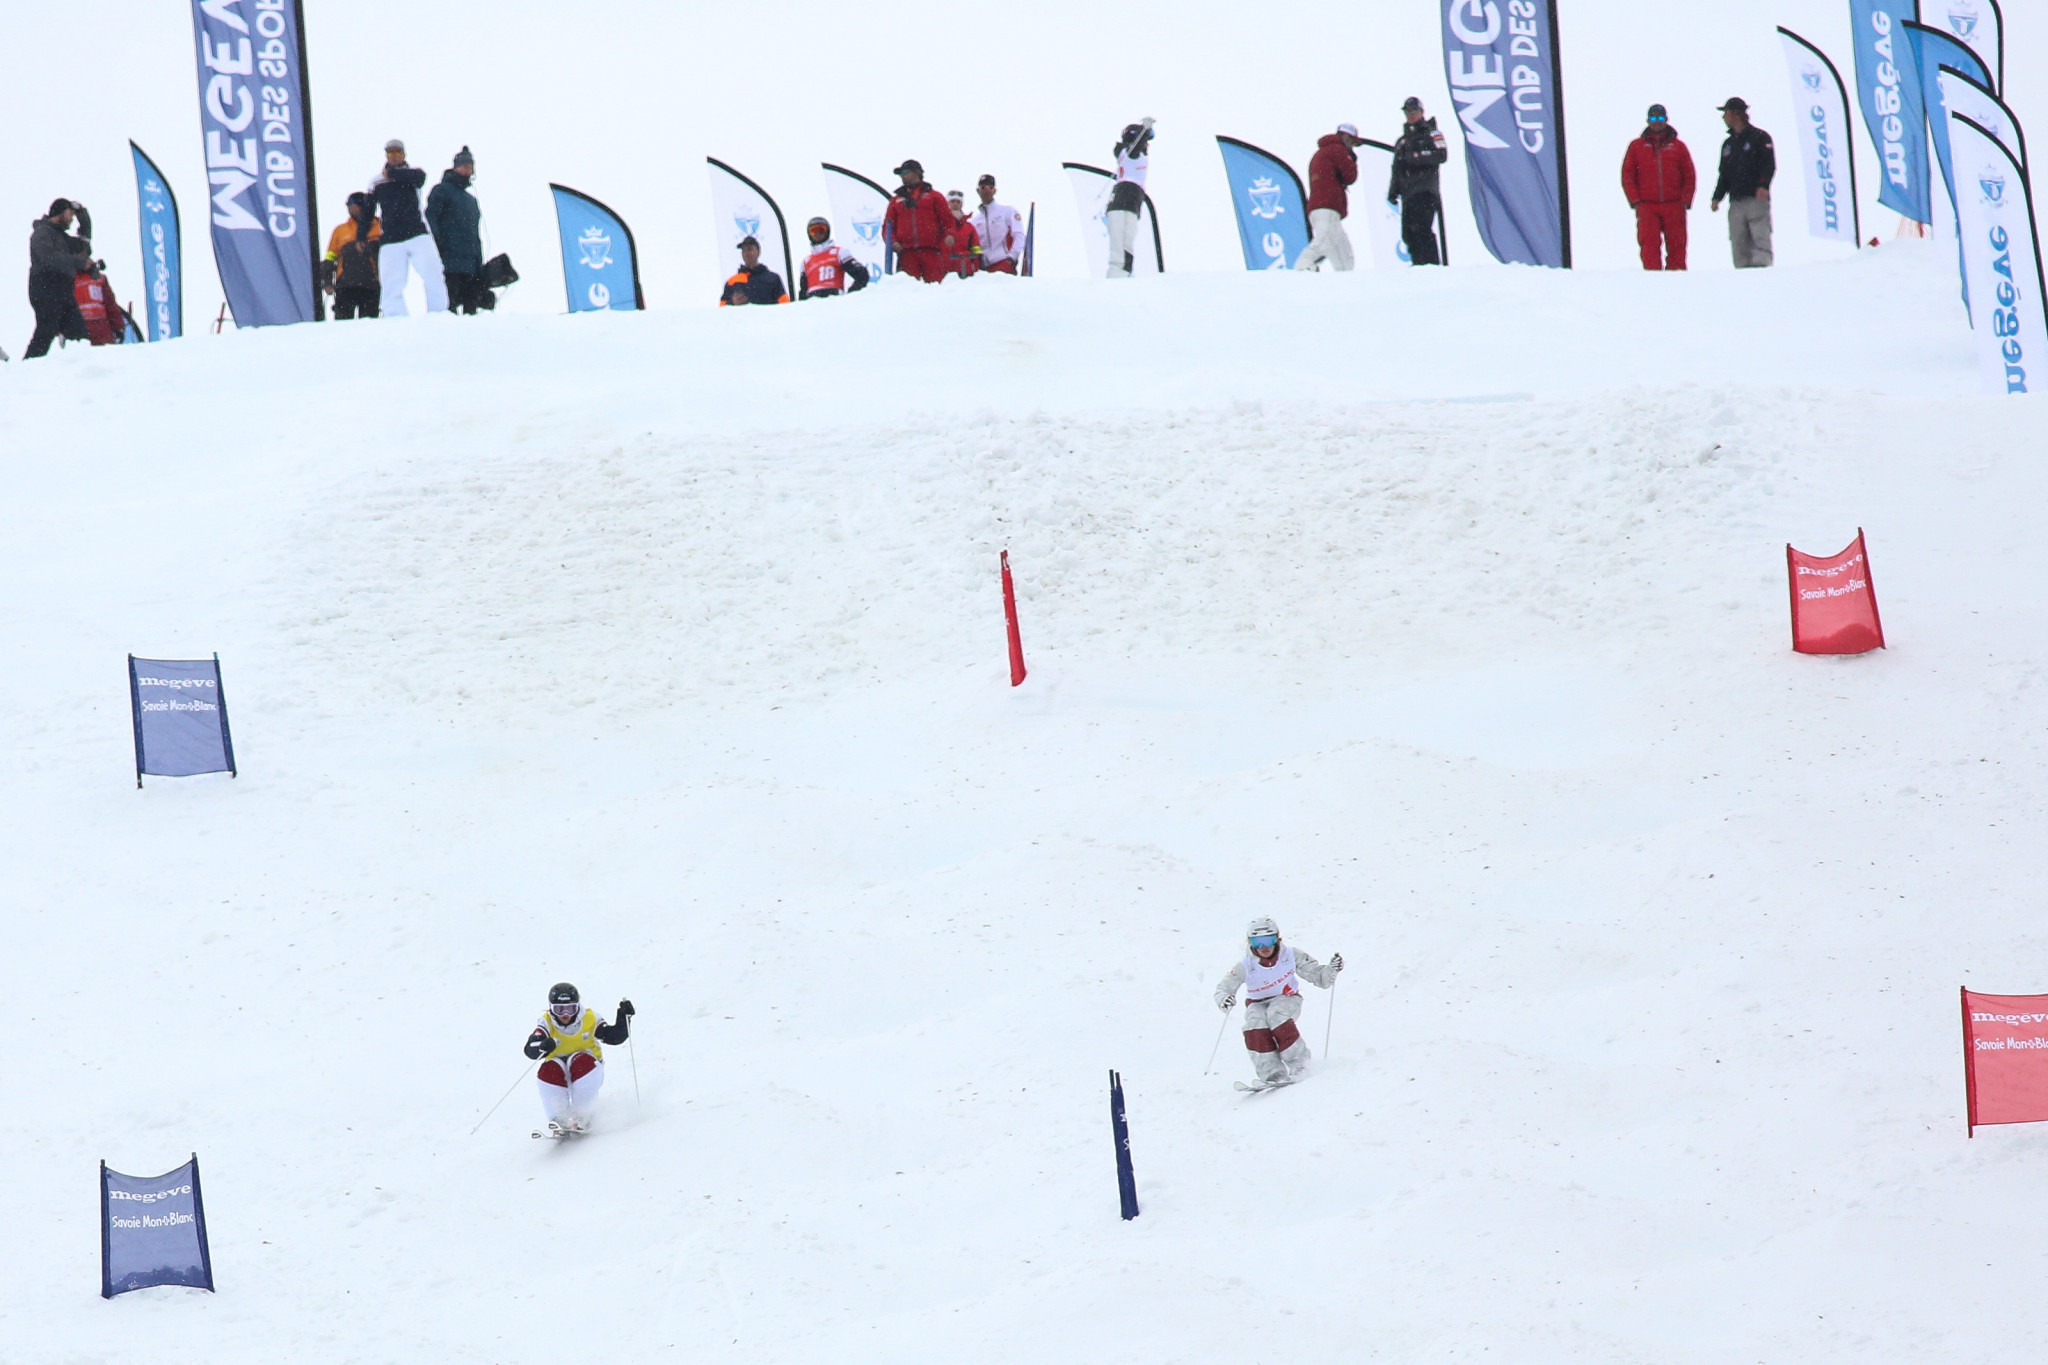 Jaelin Kauf beat Perrine Laffont but missed out on the World Cup title ©Getty Images